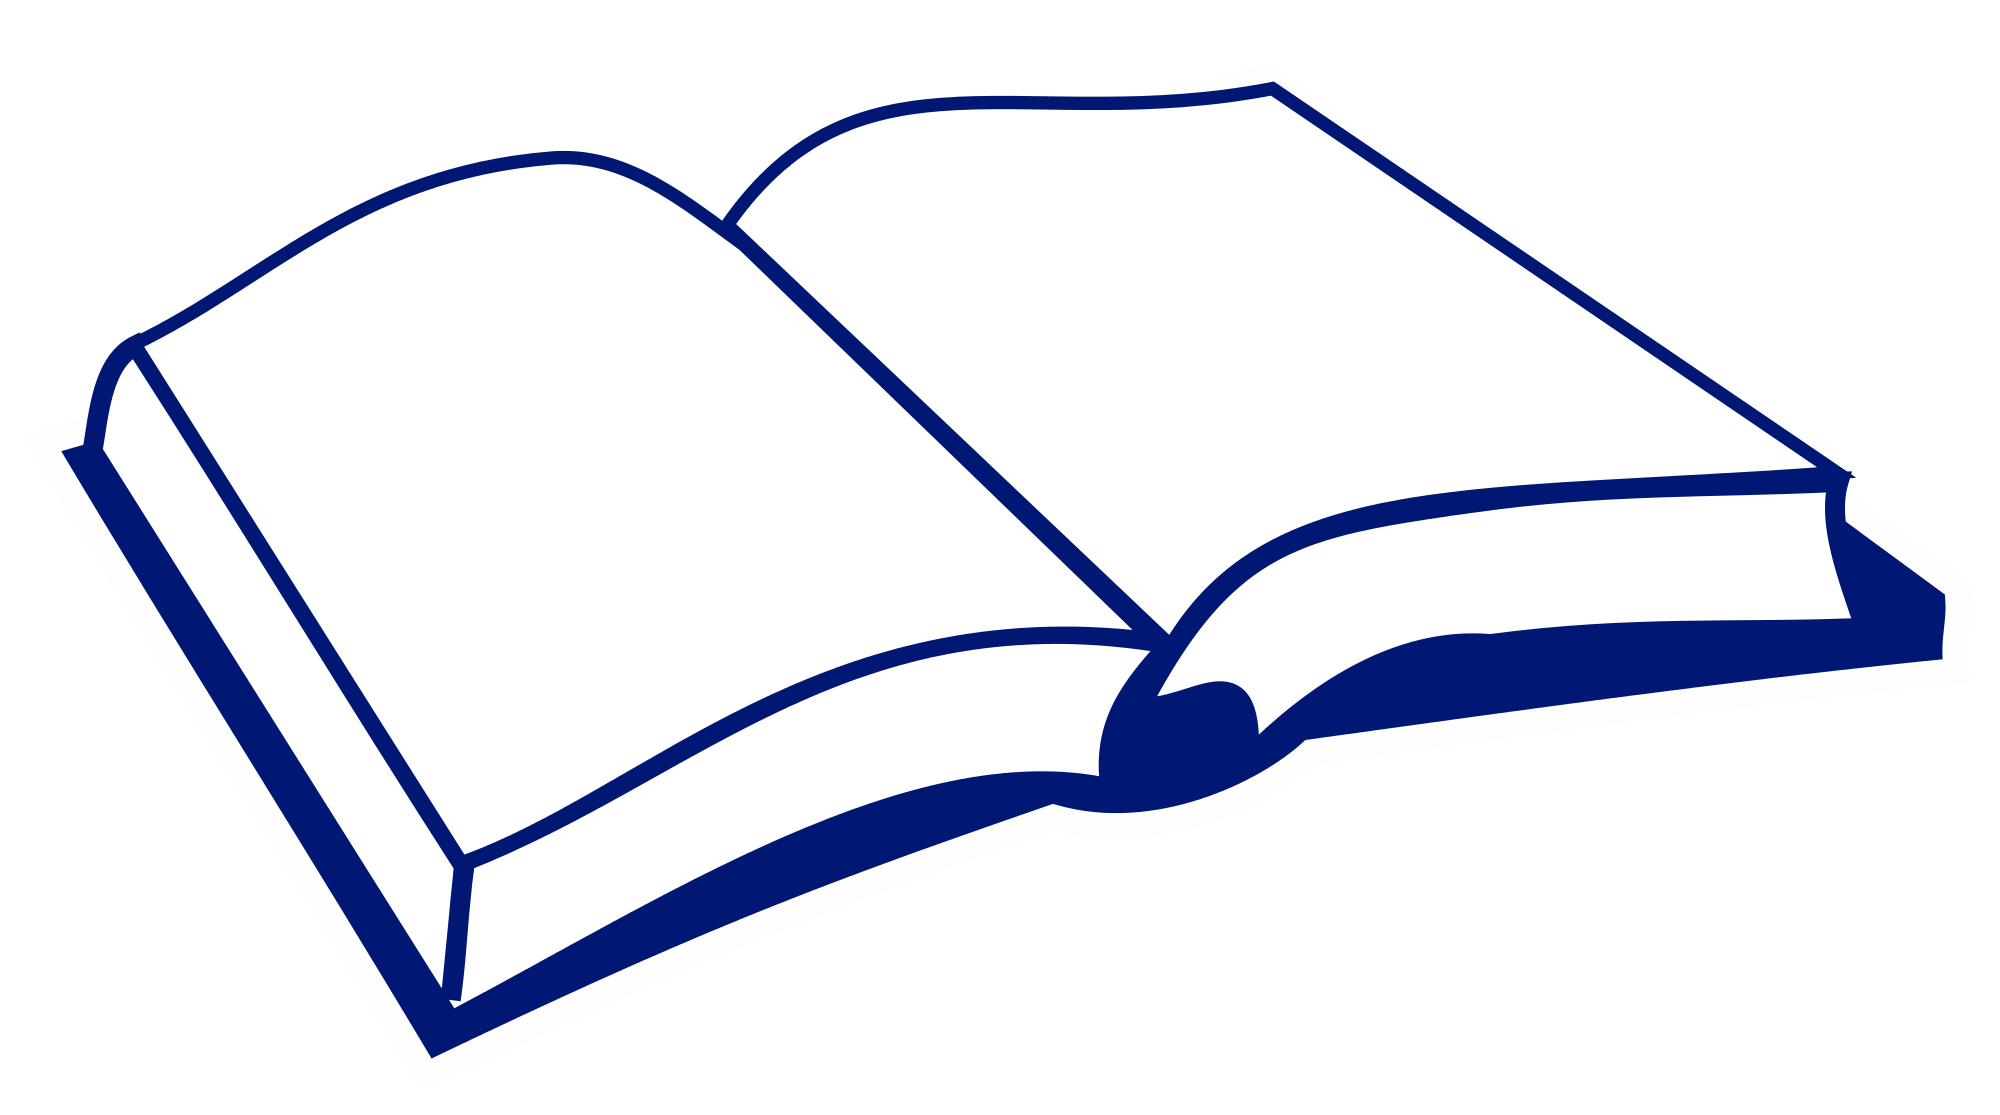 banner free Books svg clip art. Library open source clipart